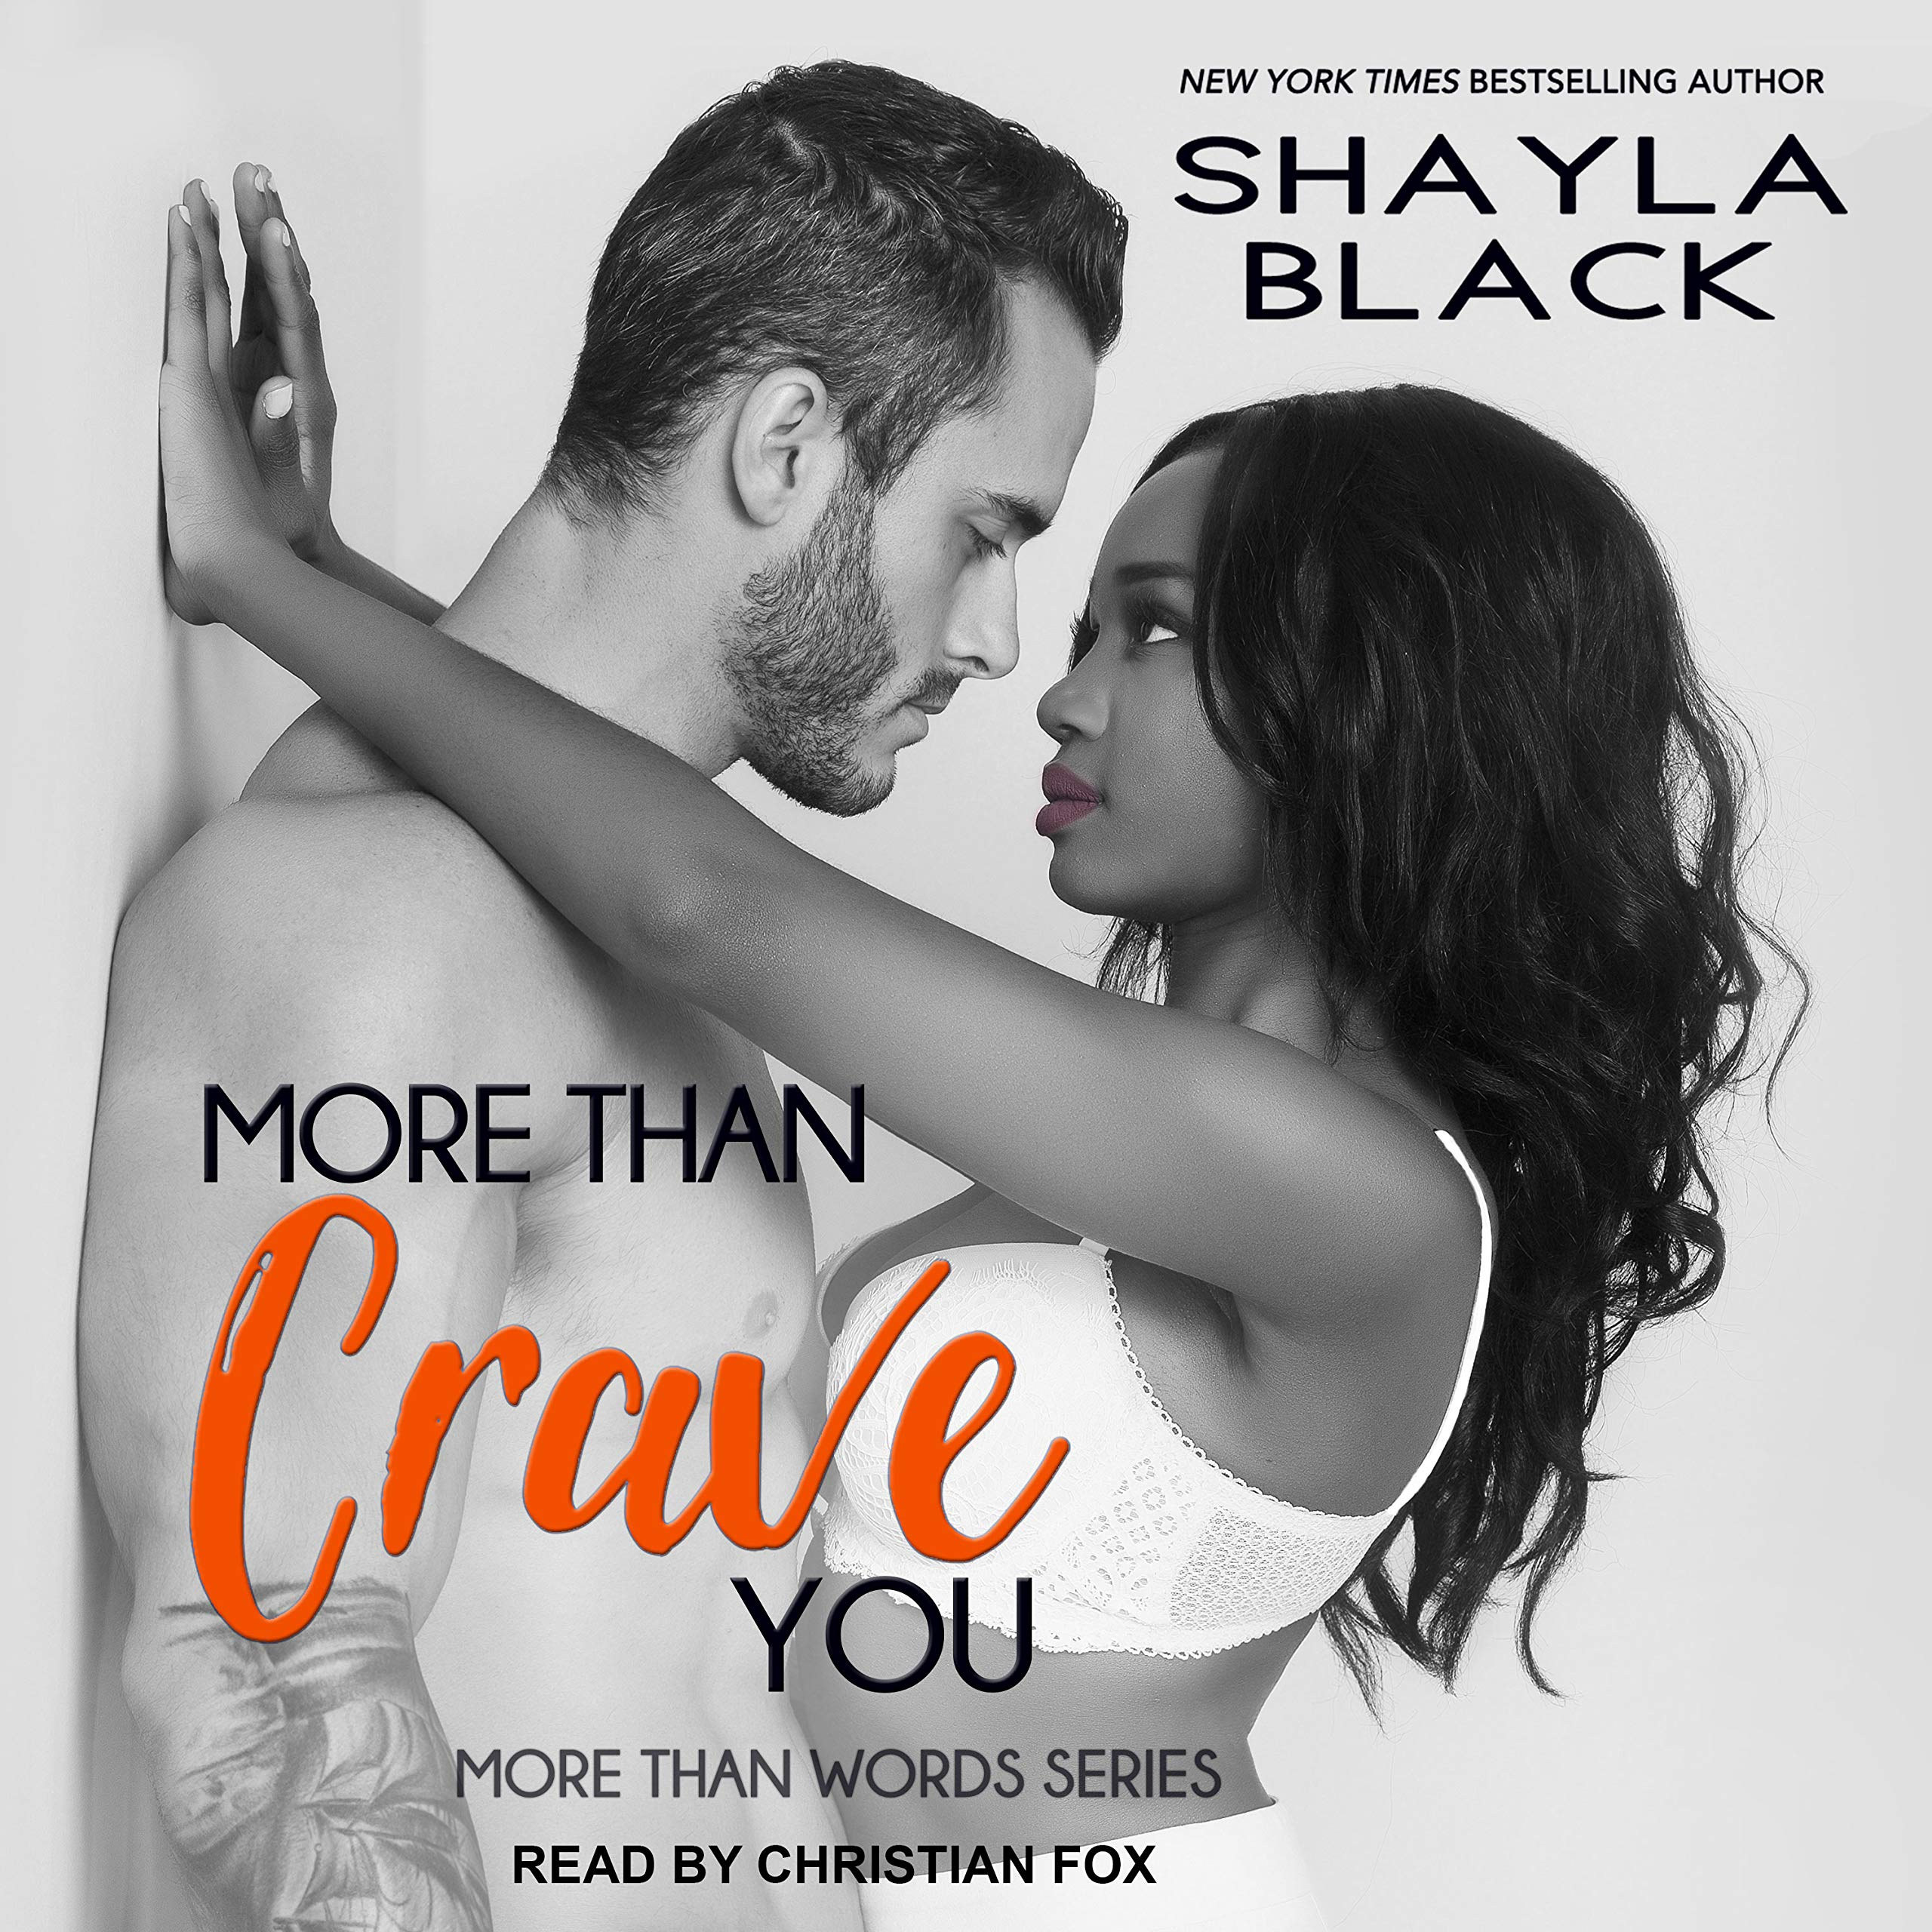 More Than Crave You: More Than Words Series, Book 4